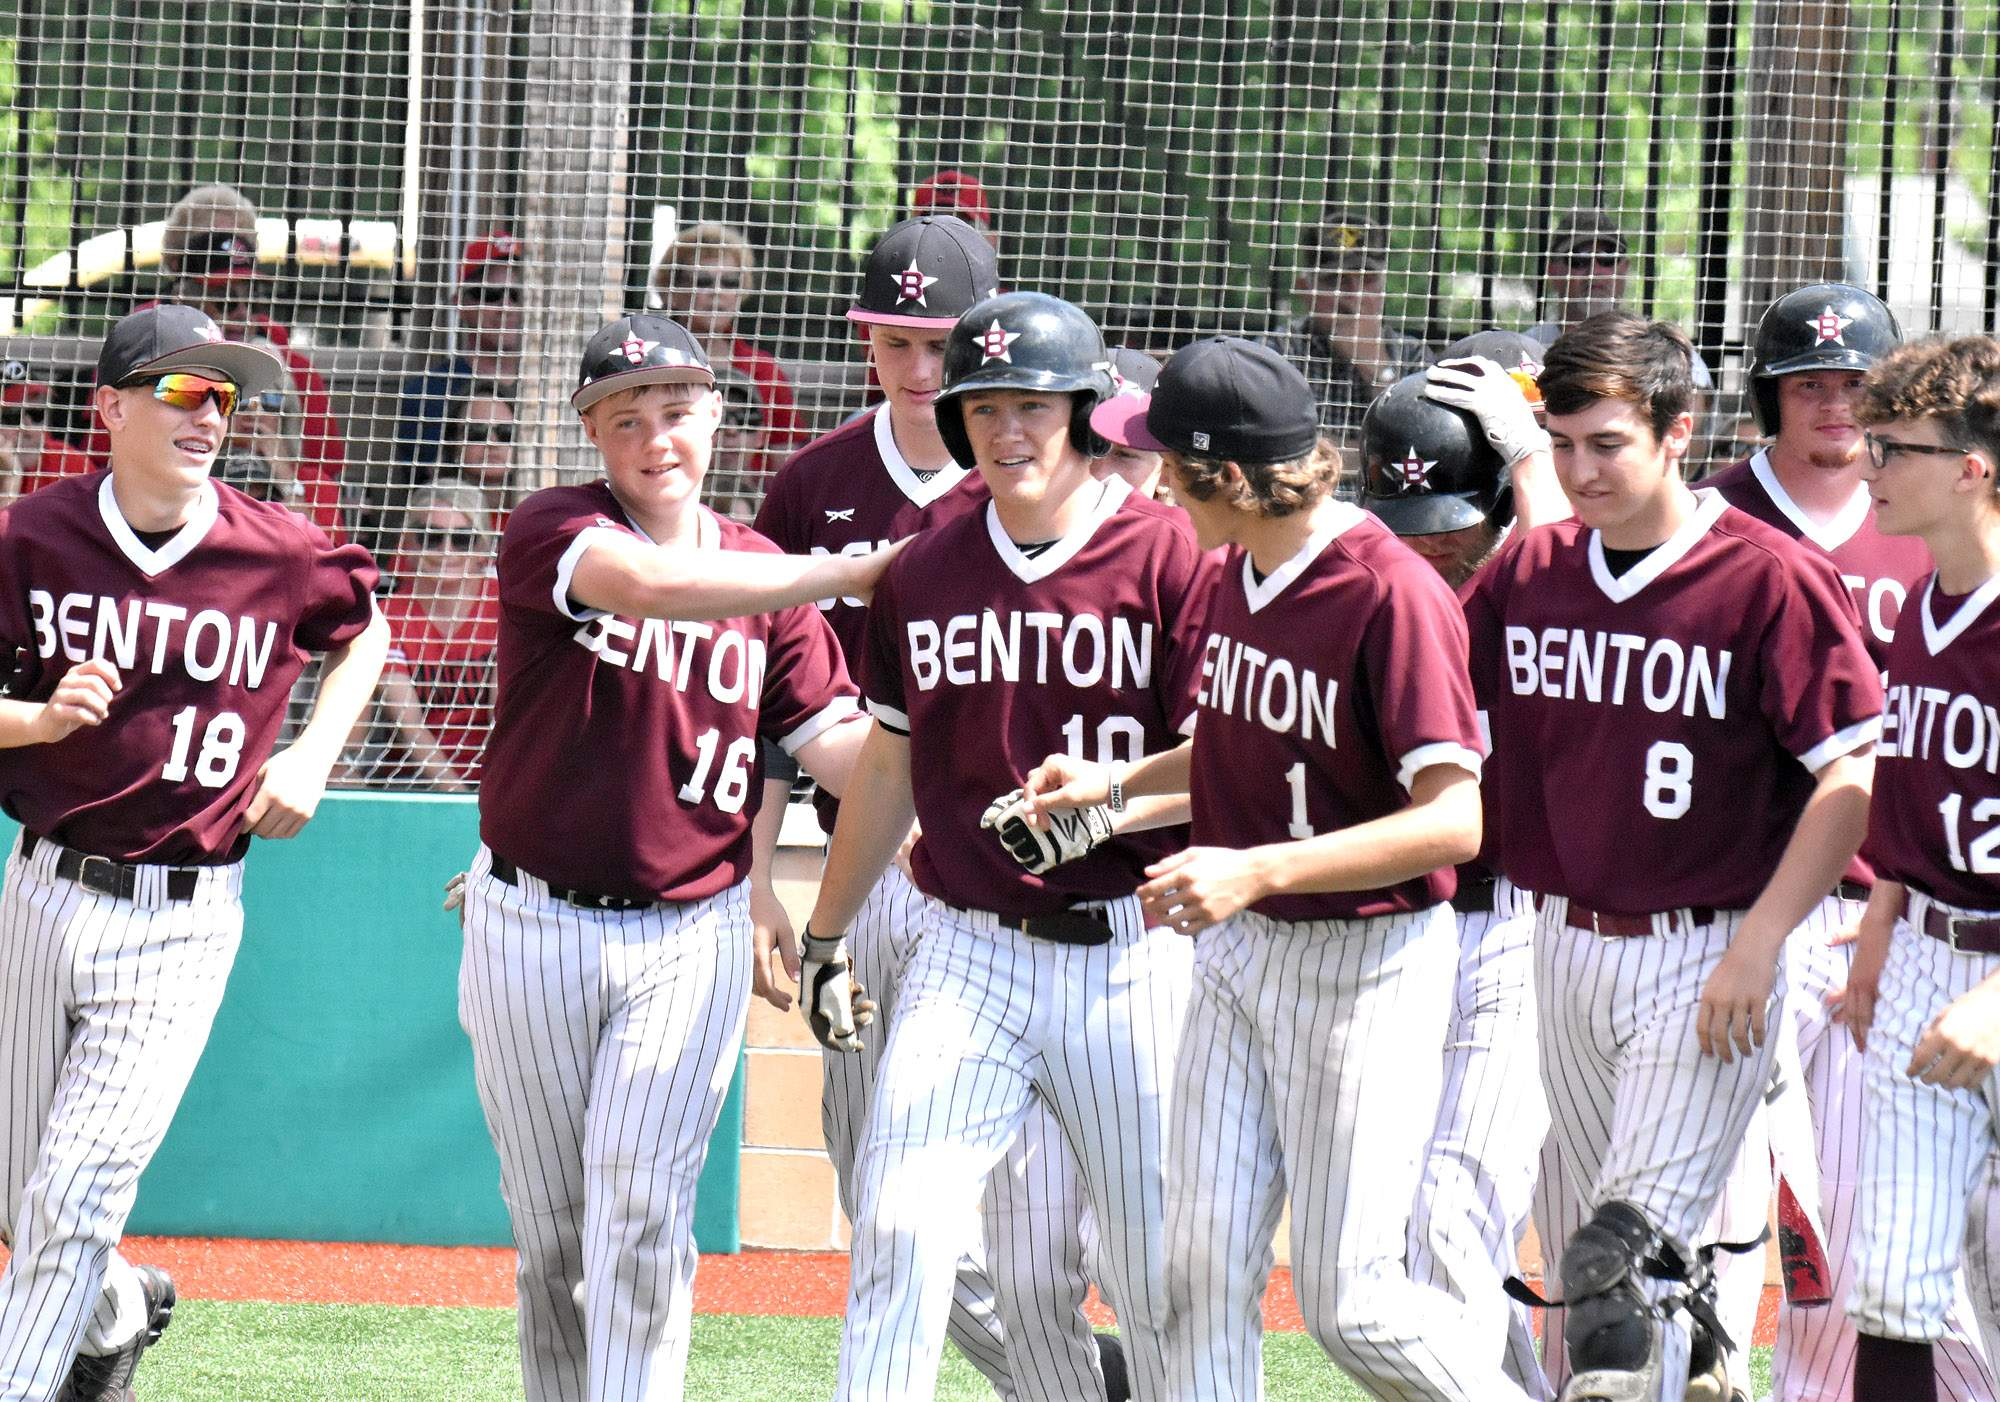 Hamilton Page (10) is greeted by his teammates after hitting a solo home run to lead off the fourth inning in Benton's 7-1 victory at Du Quoin on Saturday. Page's homer tied the game in the fourth and the Rangers tacked on a single run in the fifth and four more in the seventh.